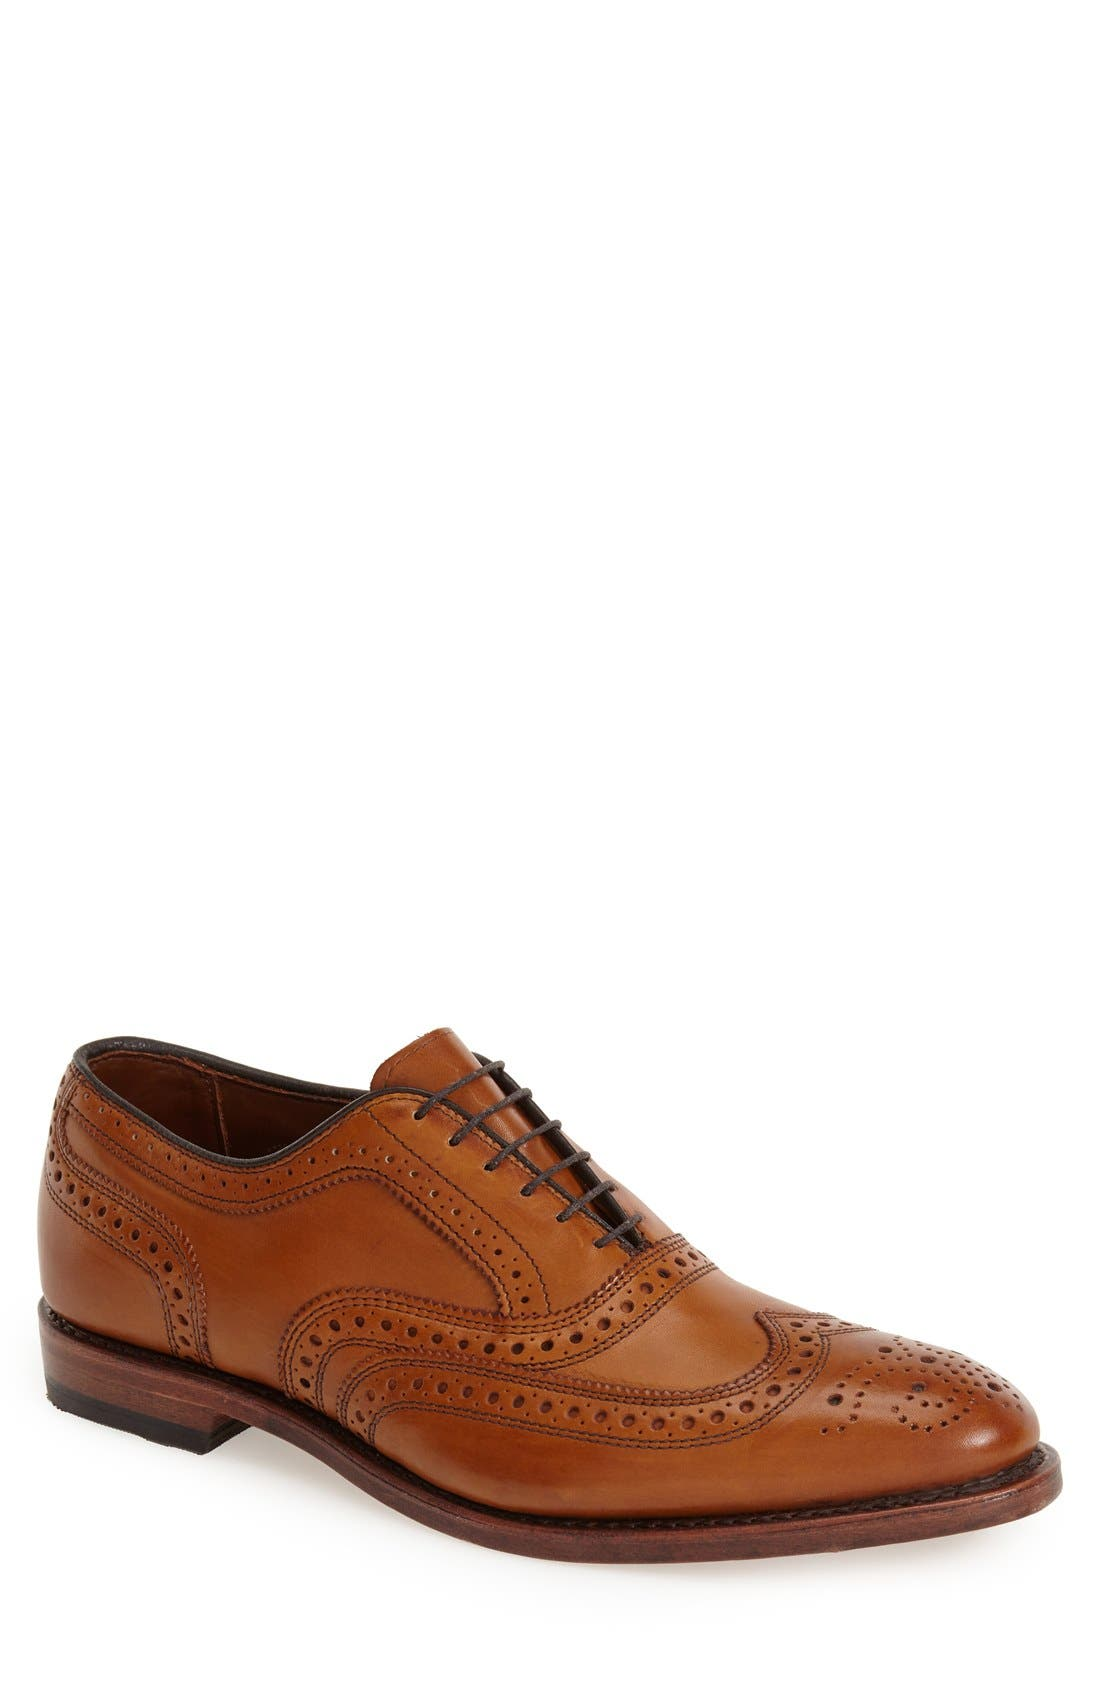 Main Image - Allen Edmonds 'McAllister' Wingtip (Men)